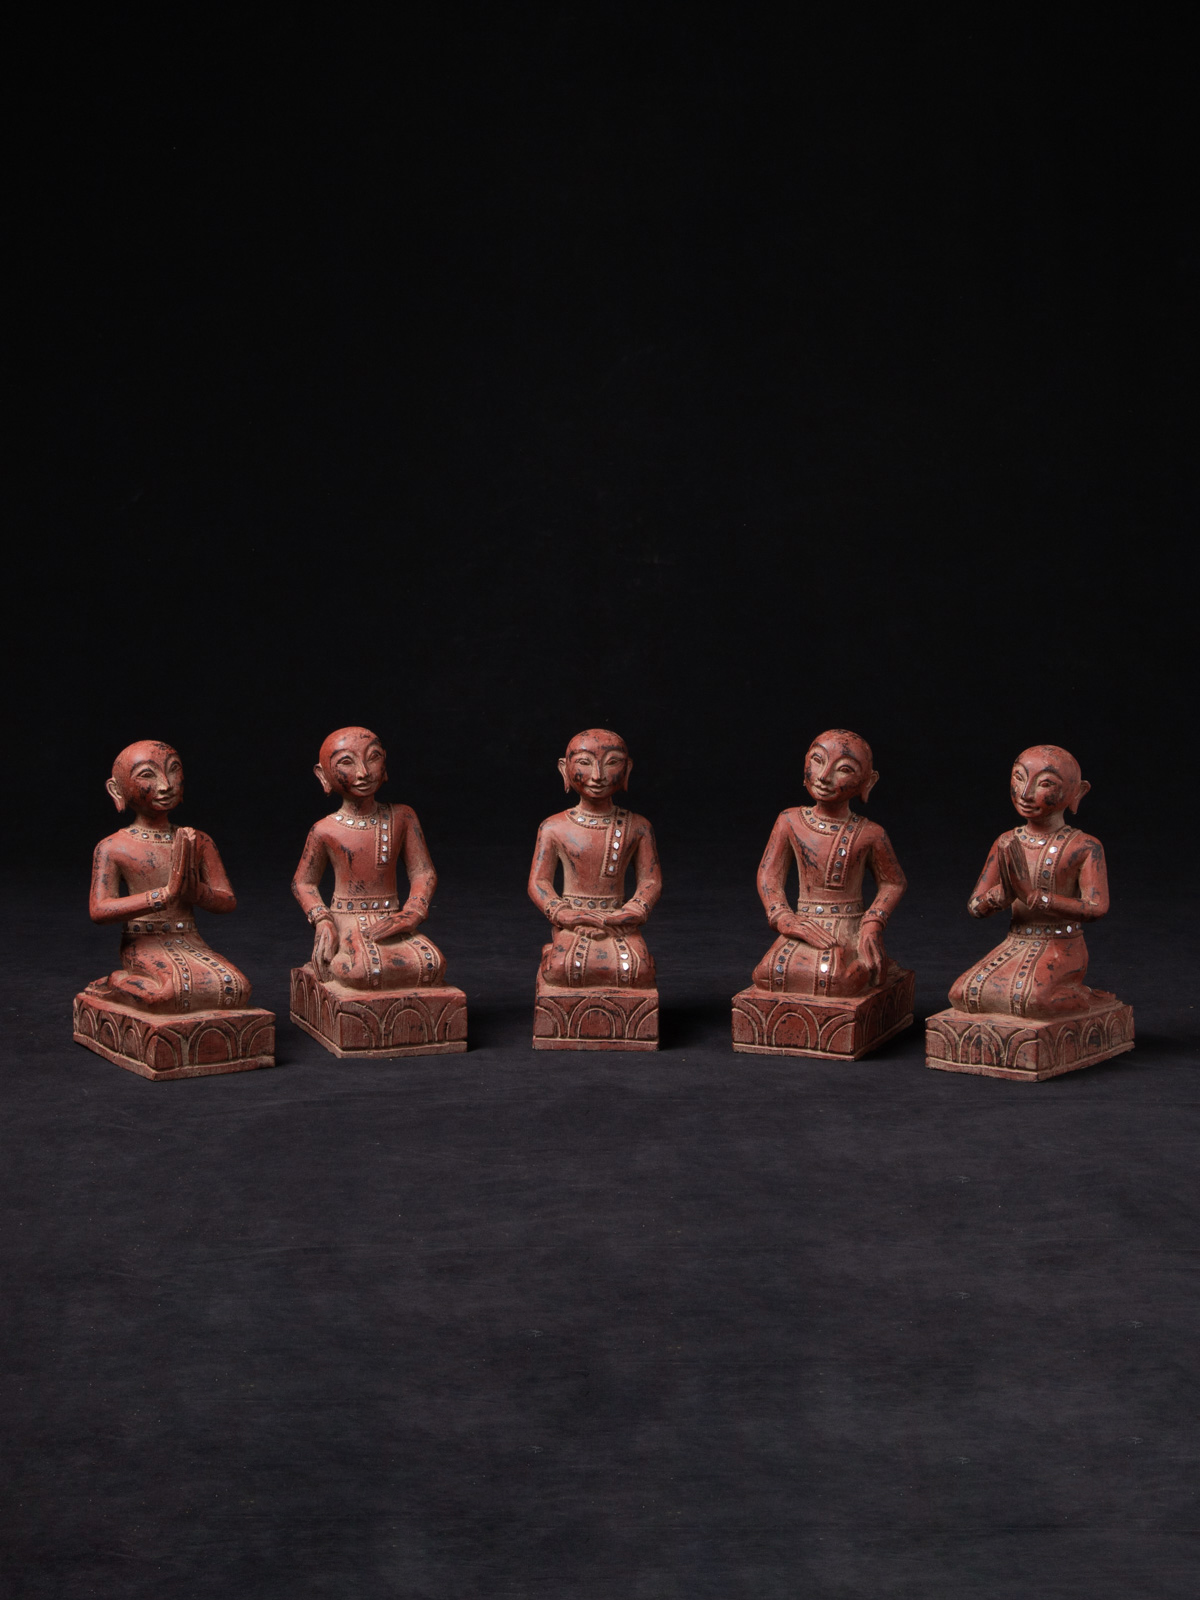 Set of wooden monk statues from Burma made from Wood